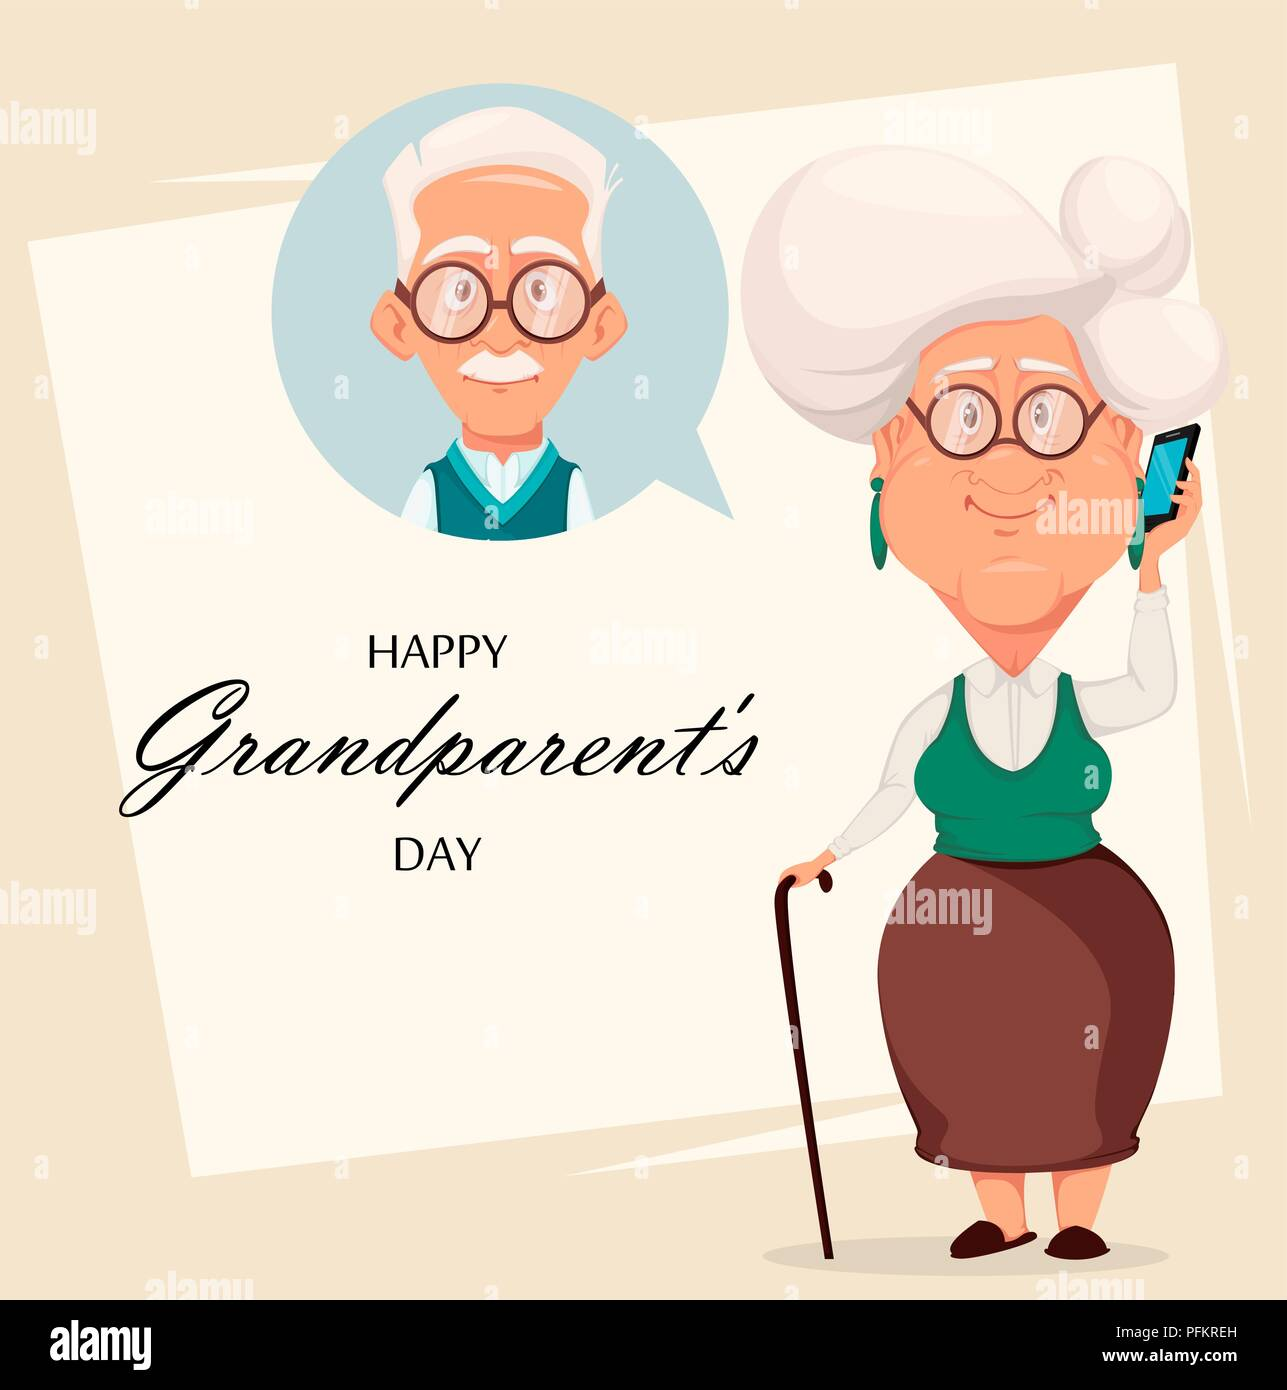 Grandparents Day Greeting Card Grandmother Calling To Grandfather